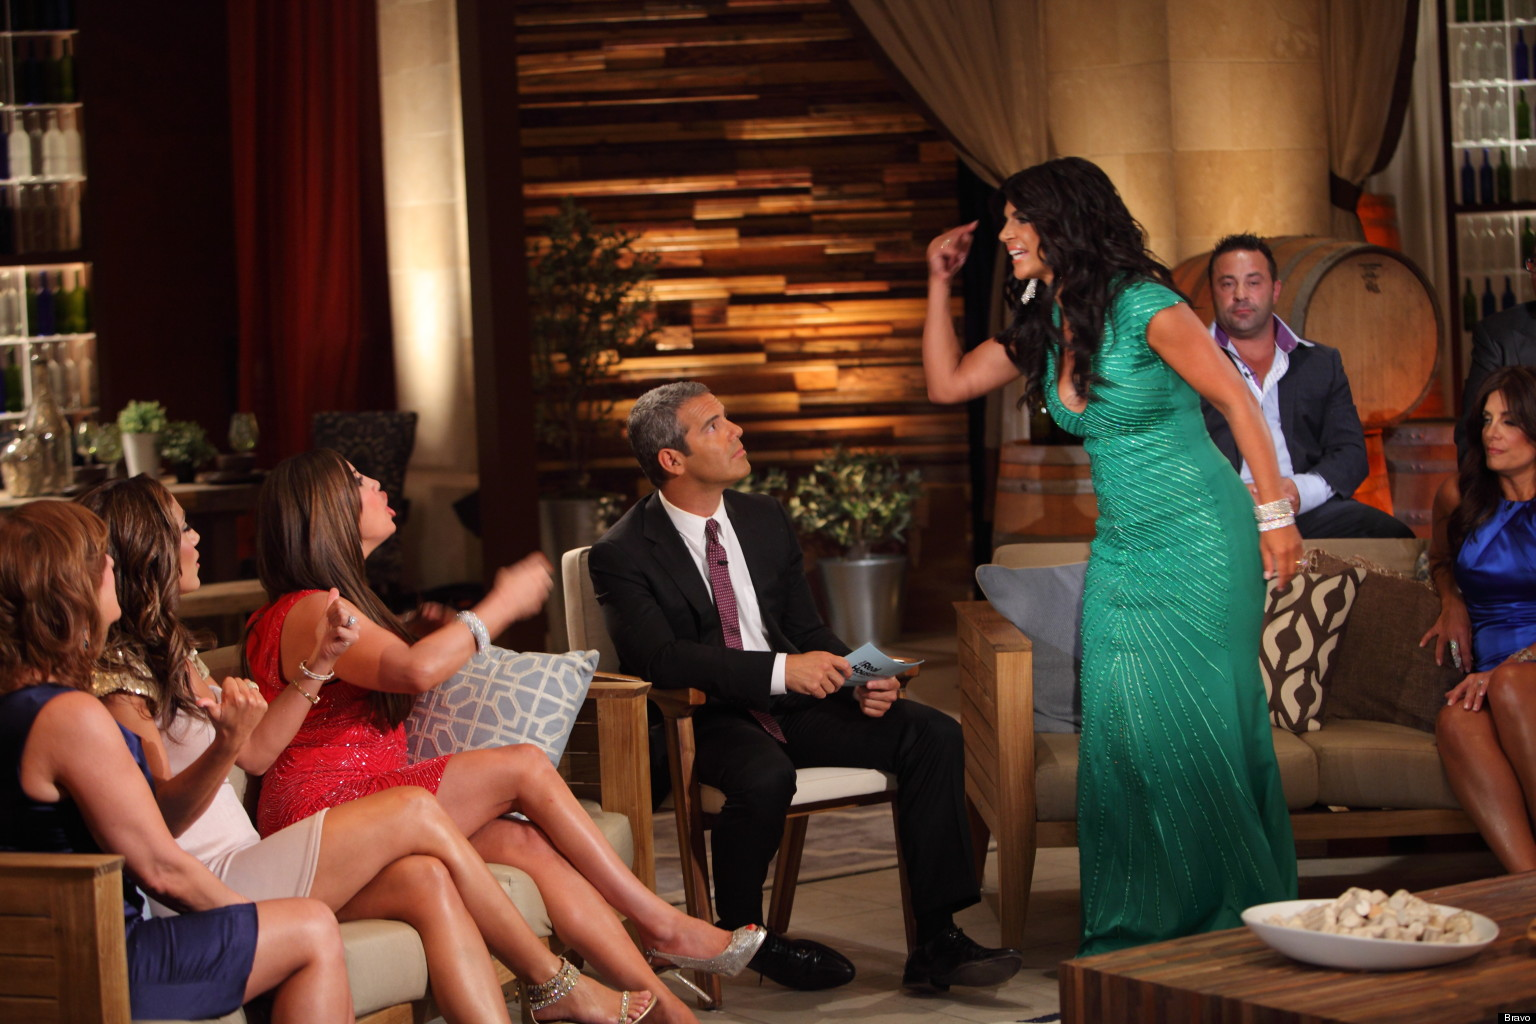 21+ RHONJ Recaps 2017 - Funny Real Housewives of New